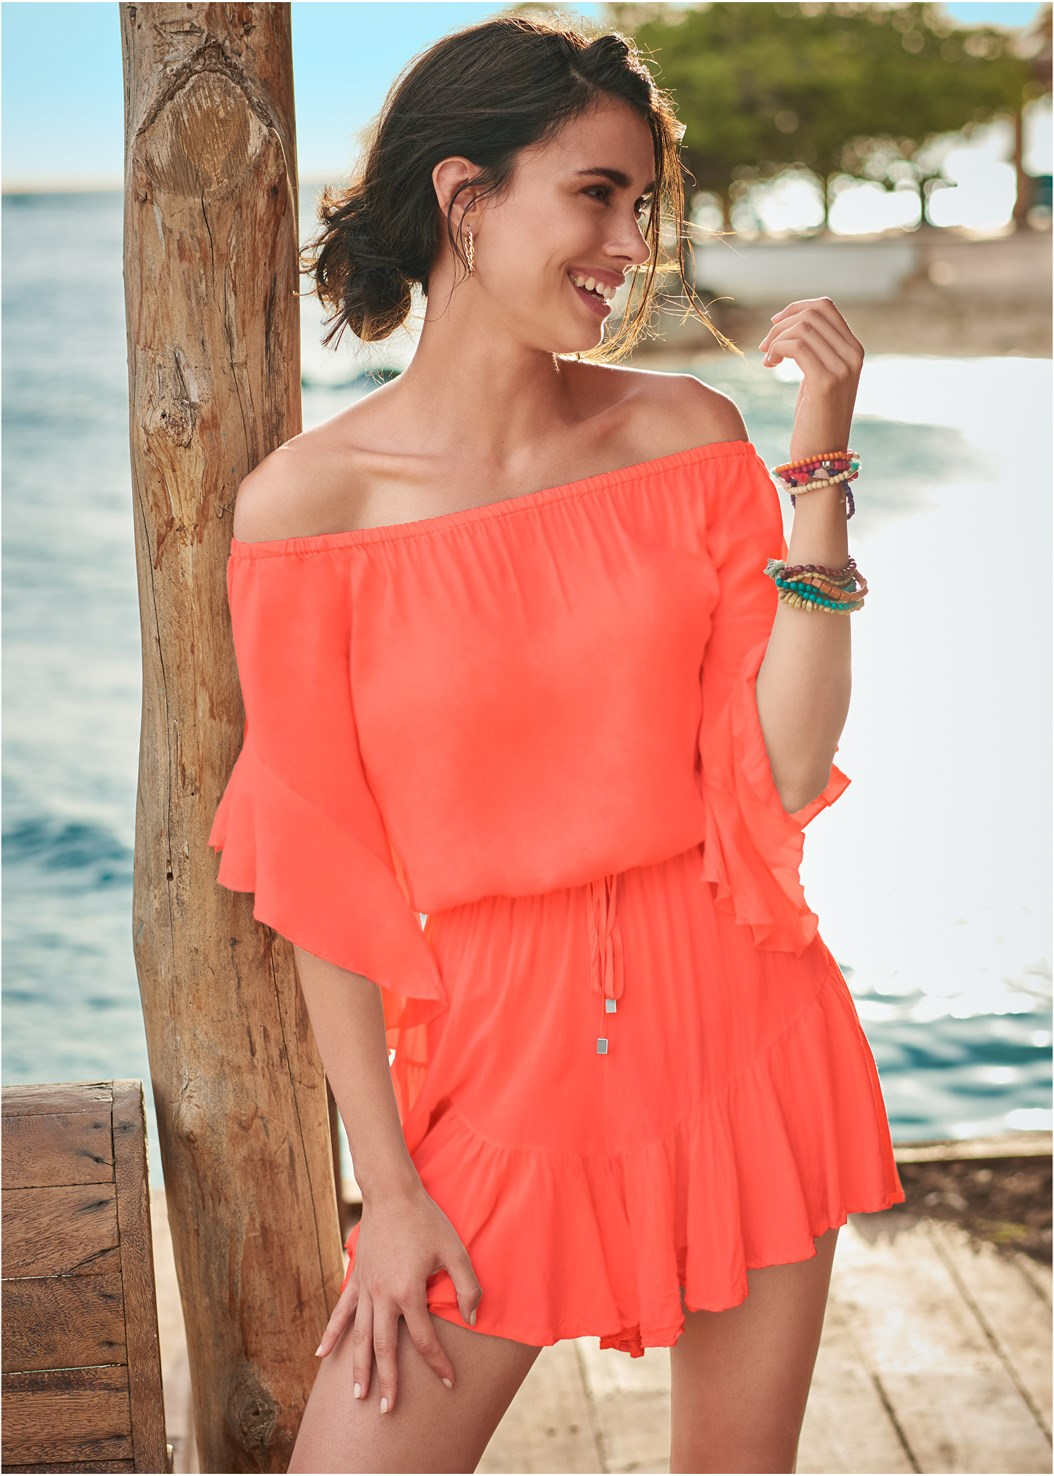 Flirty Romper Cover-Up,Zip Front Bikini Top,Mid Rise Bikini Bottom,Slenderizing One-Piece